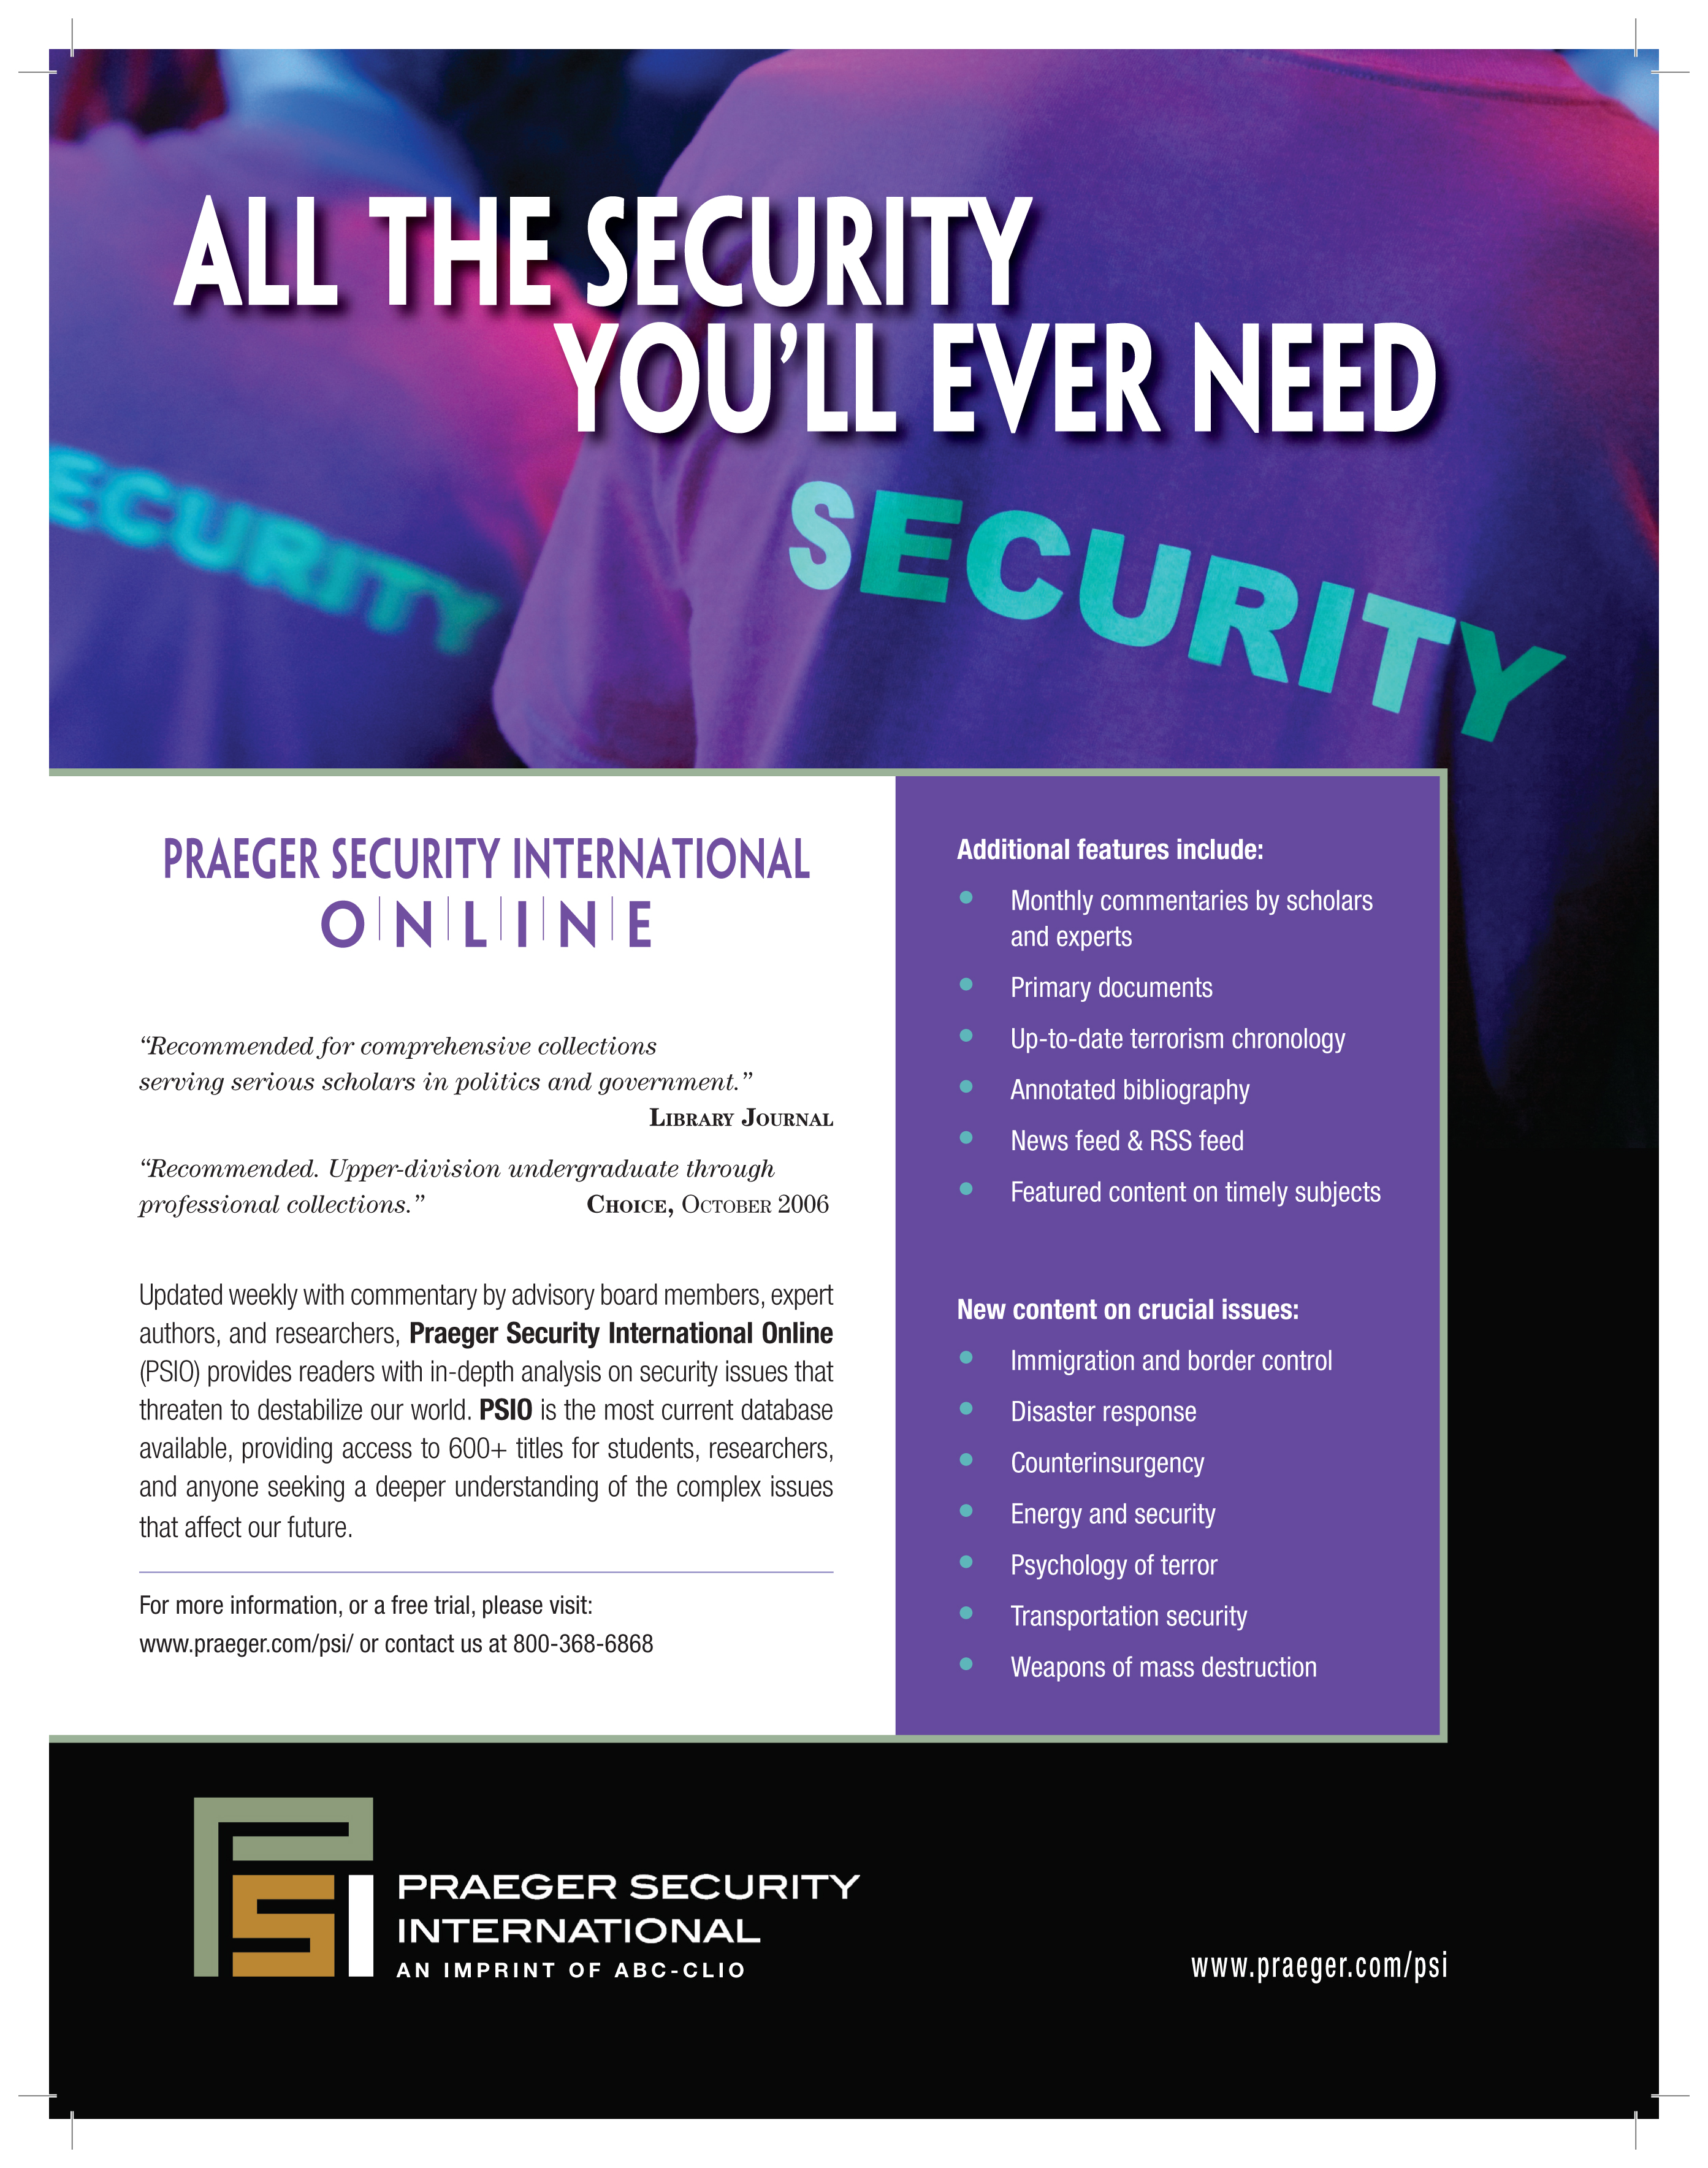 Praeger Security Online Advertisement